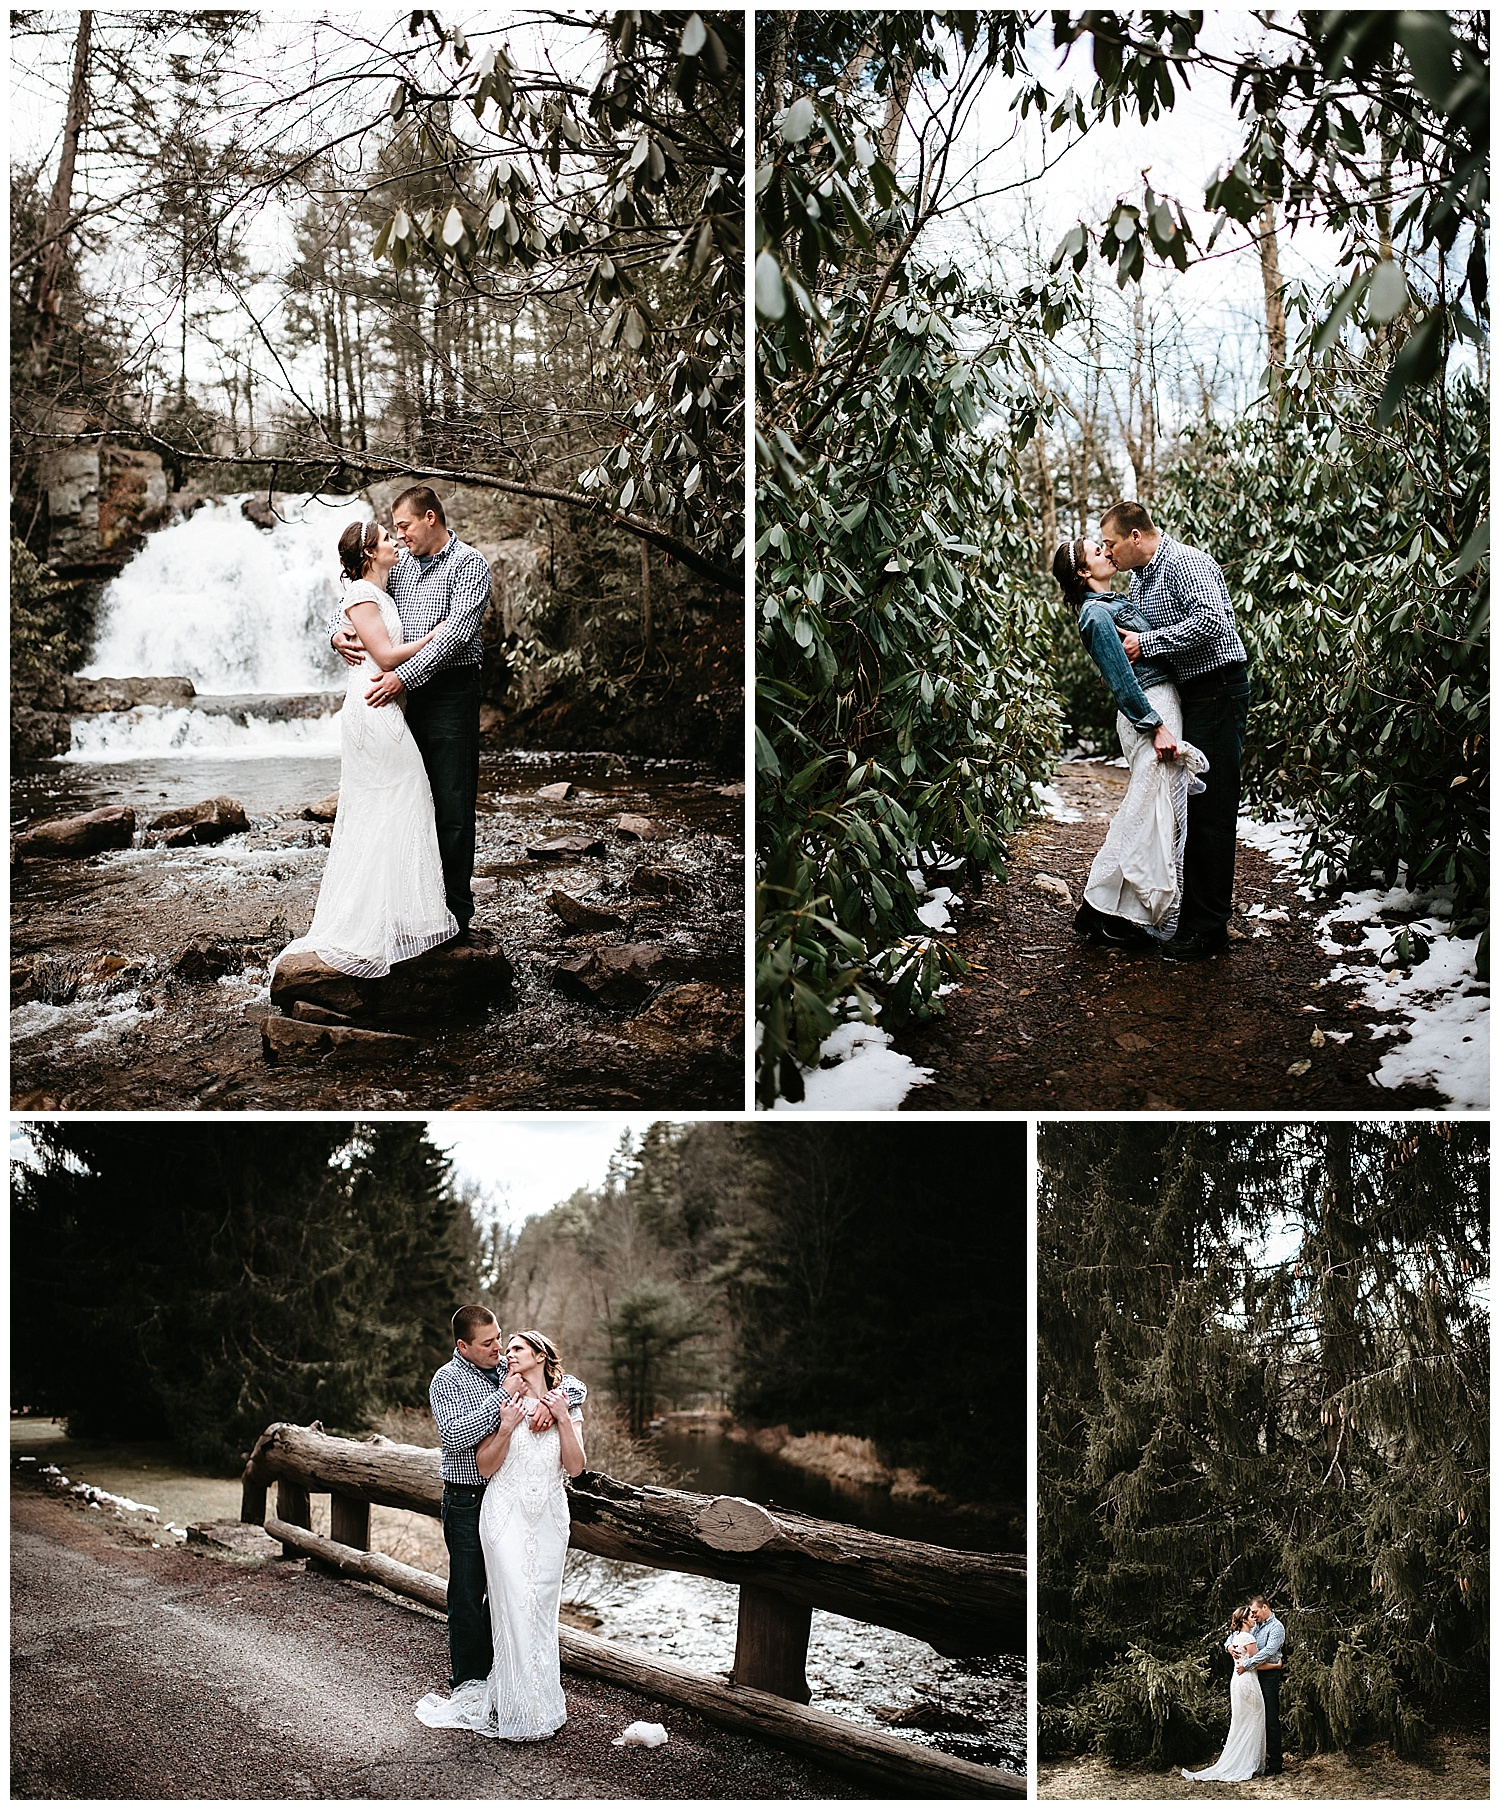 NEPA-Wedding-Engagement-photographer-hickory-run-state-park-hawk-falls-elopement_0033.jpg